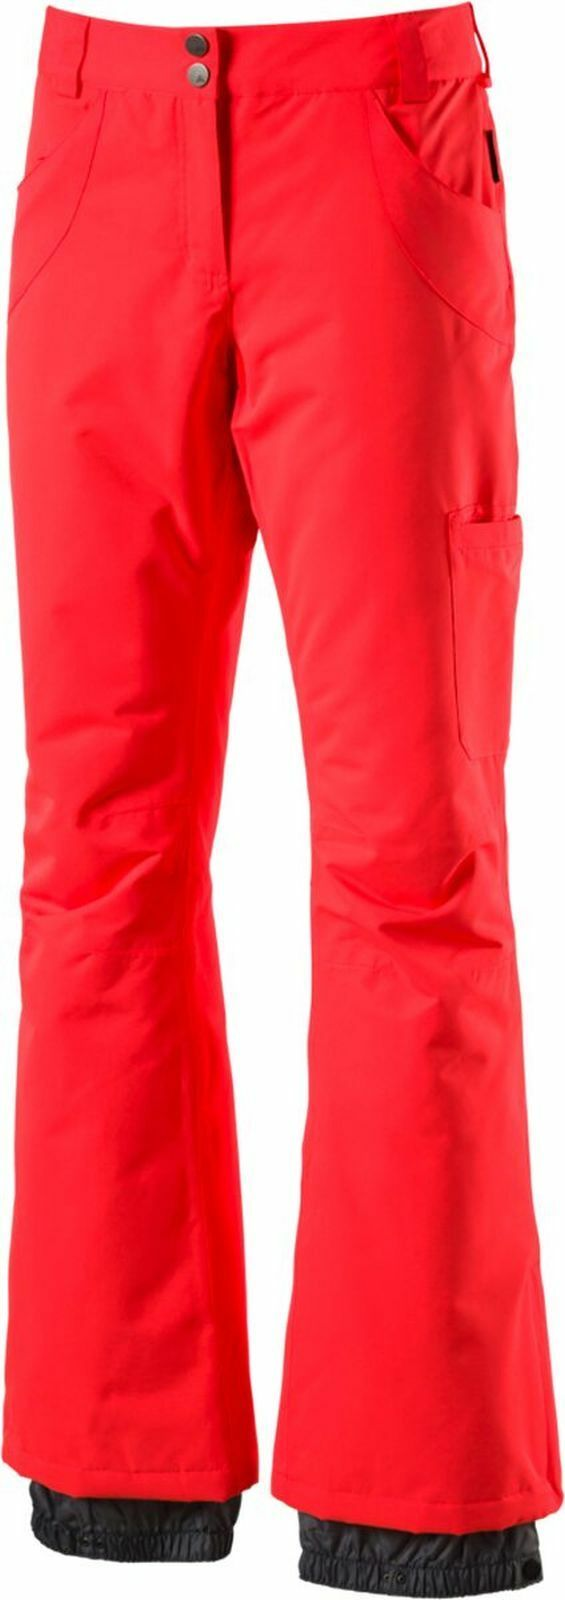 Firefly Women's Ski - Snowboard Pants Ava Red Light